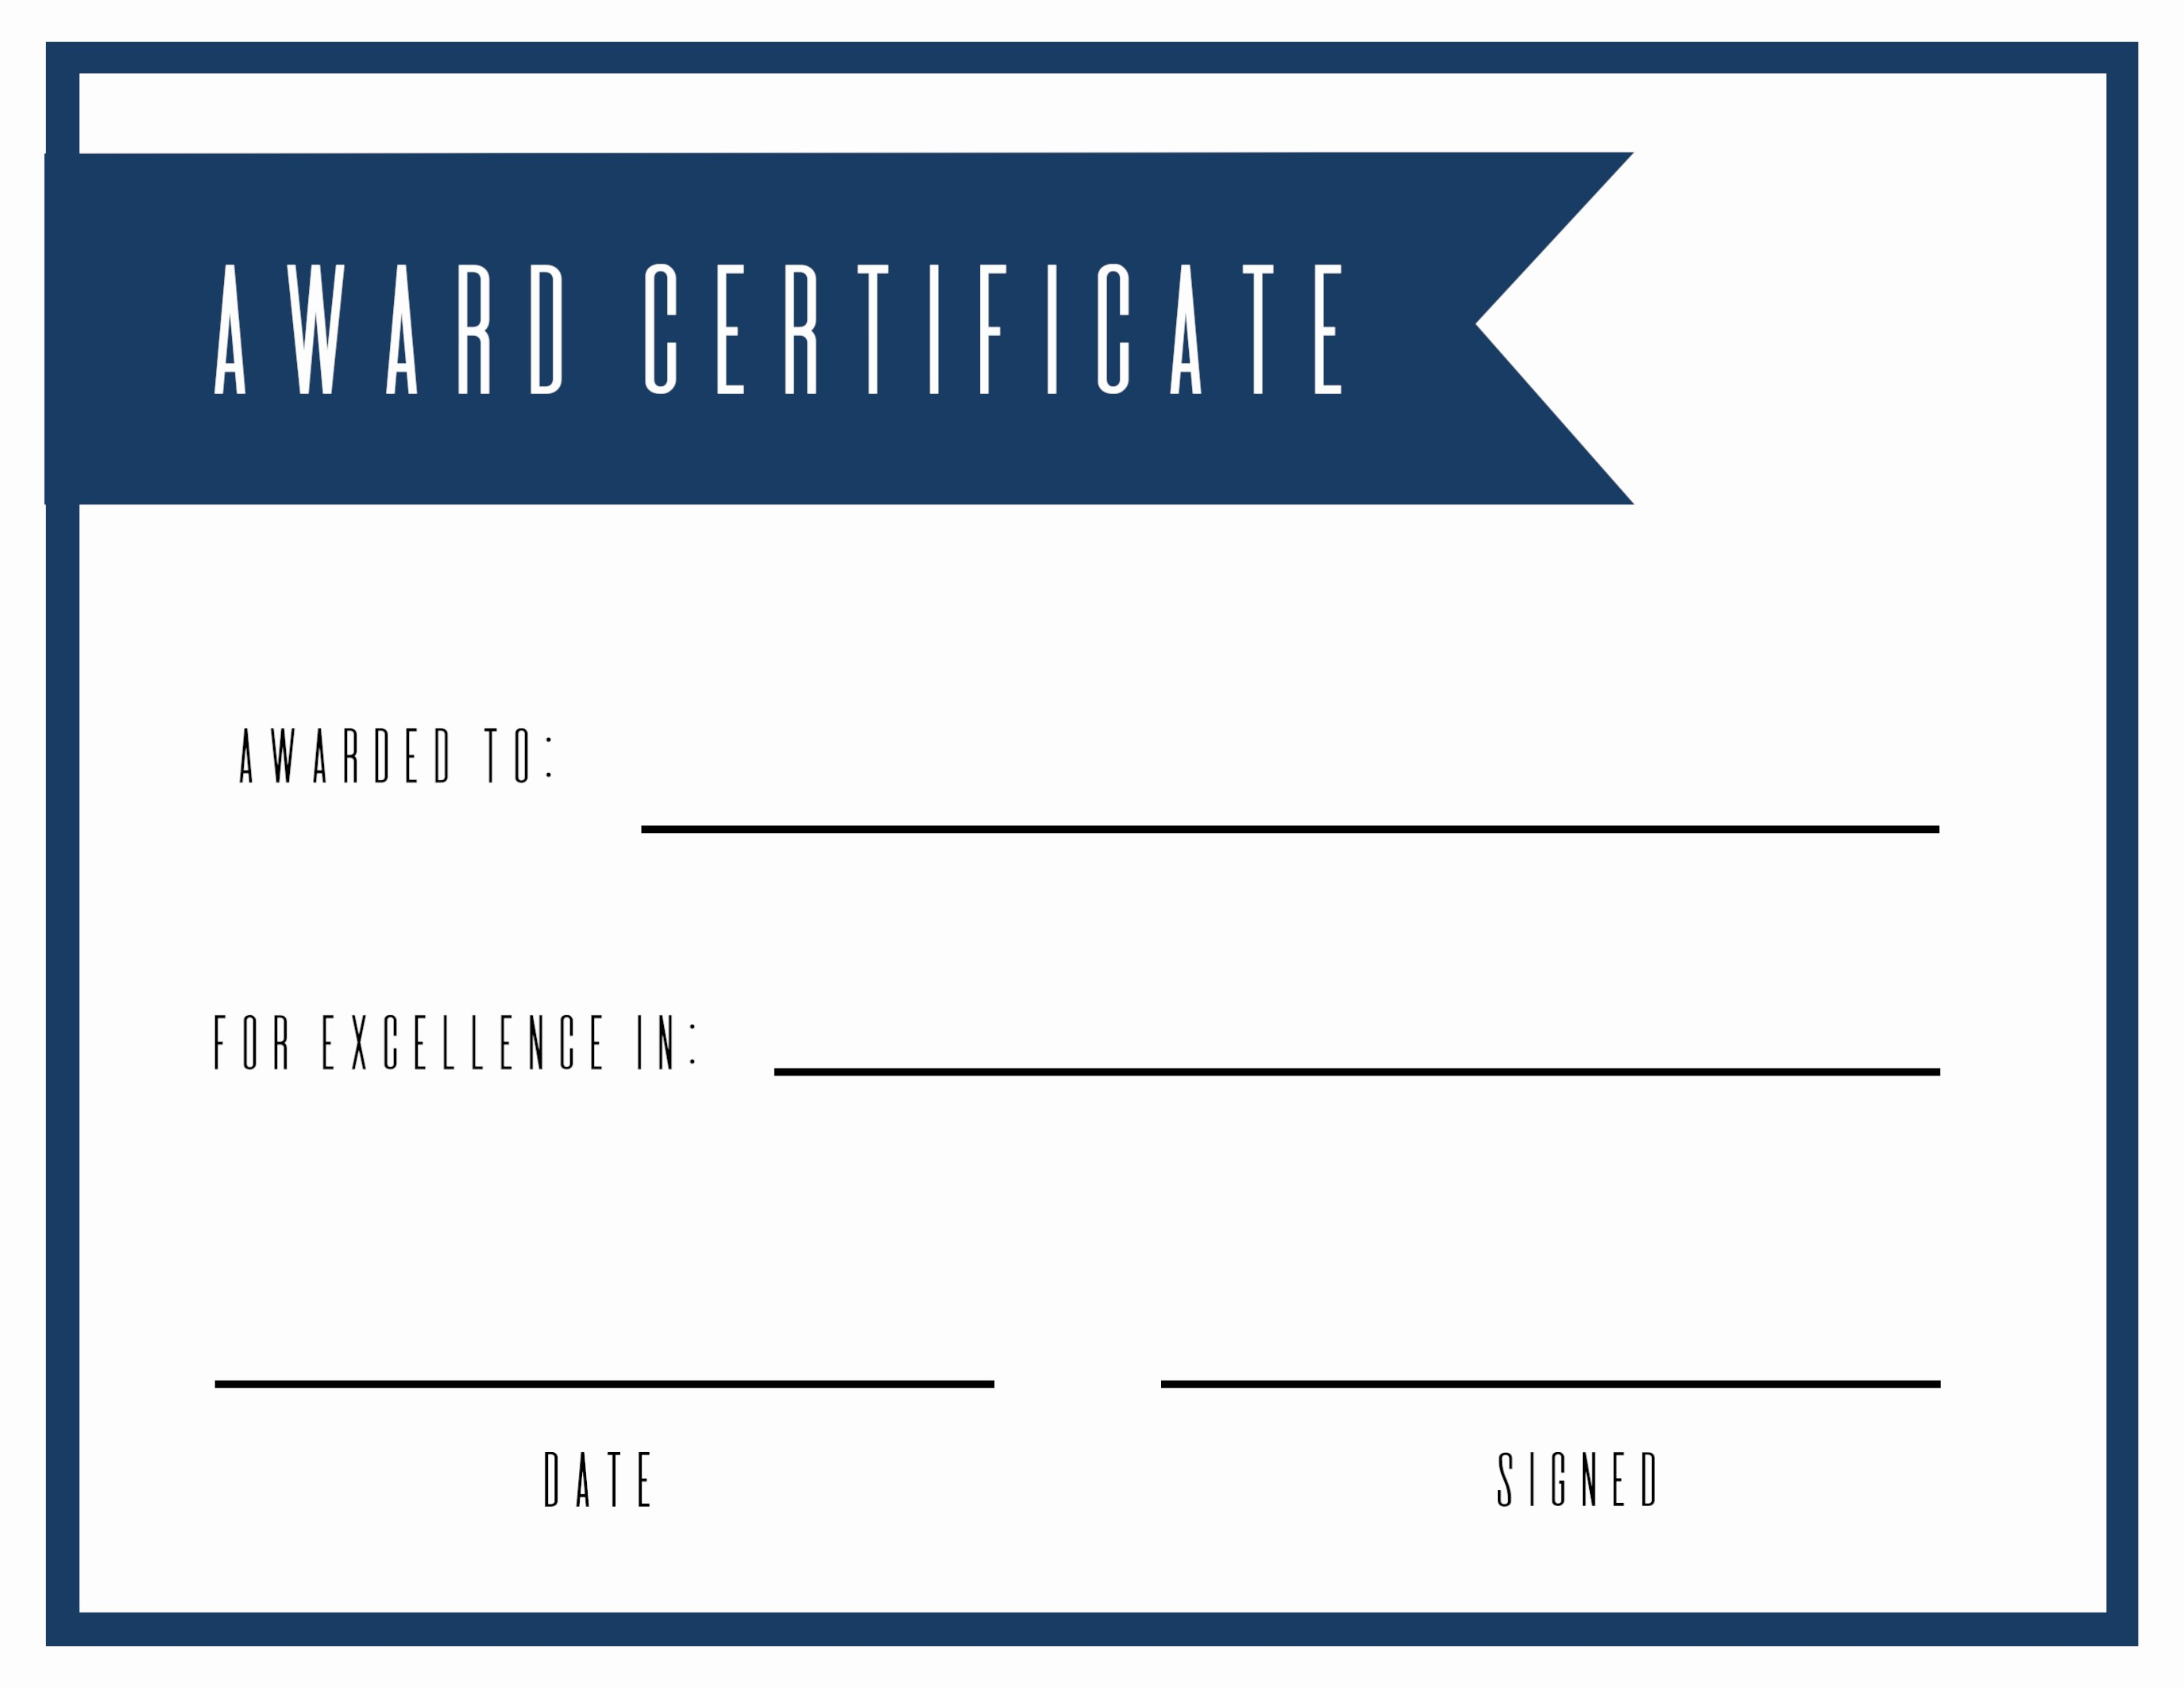 Recognition Certificate Templates Free Printable New Free Printable Award Certificate Template Paper Trail Design